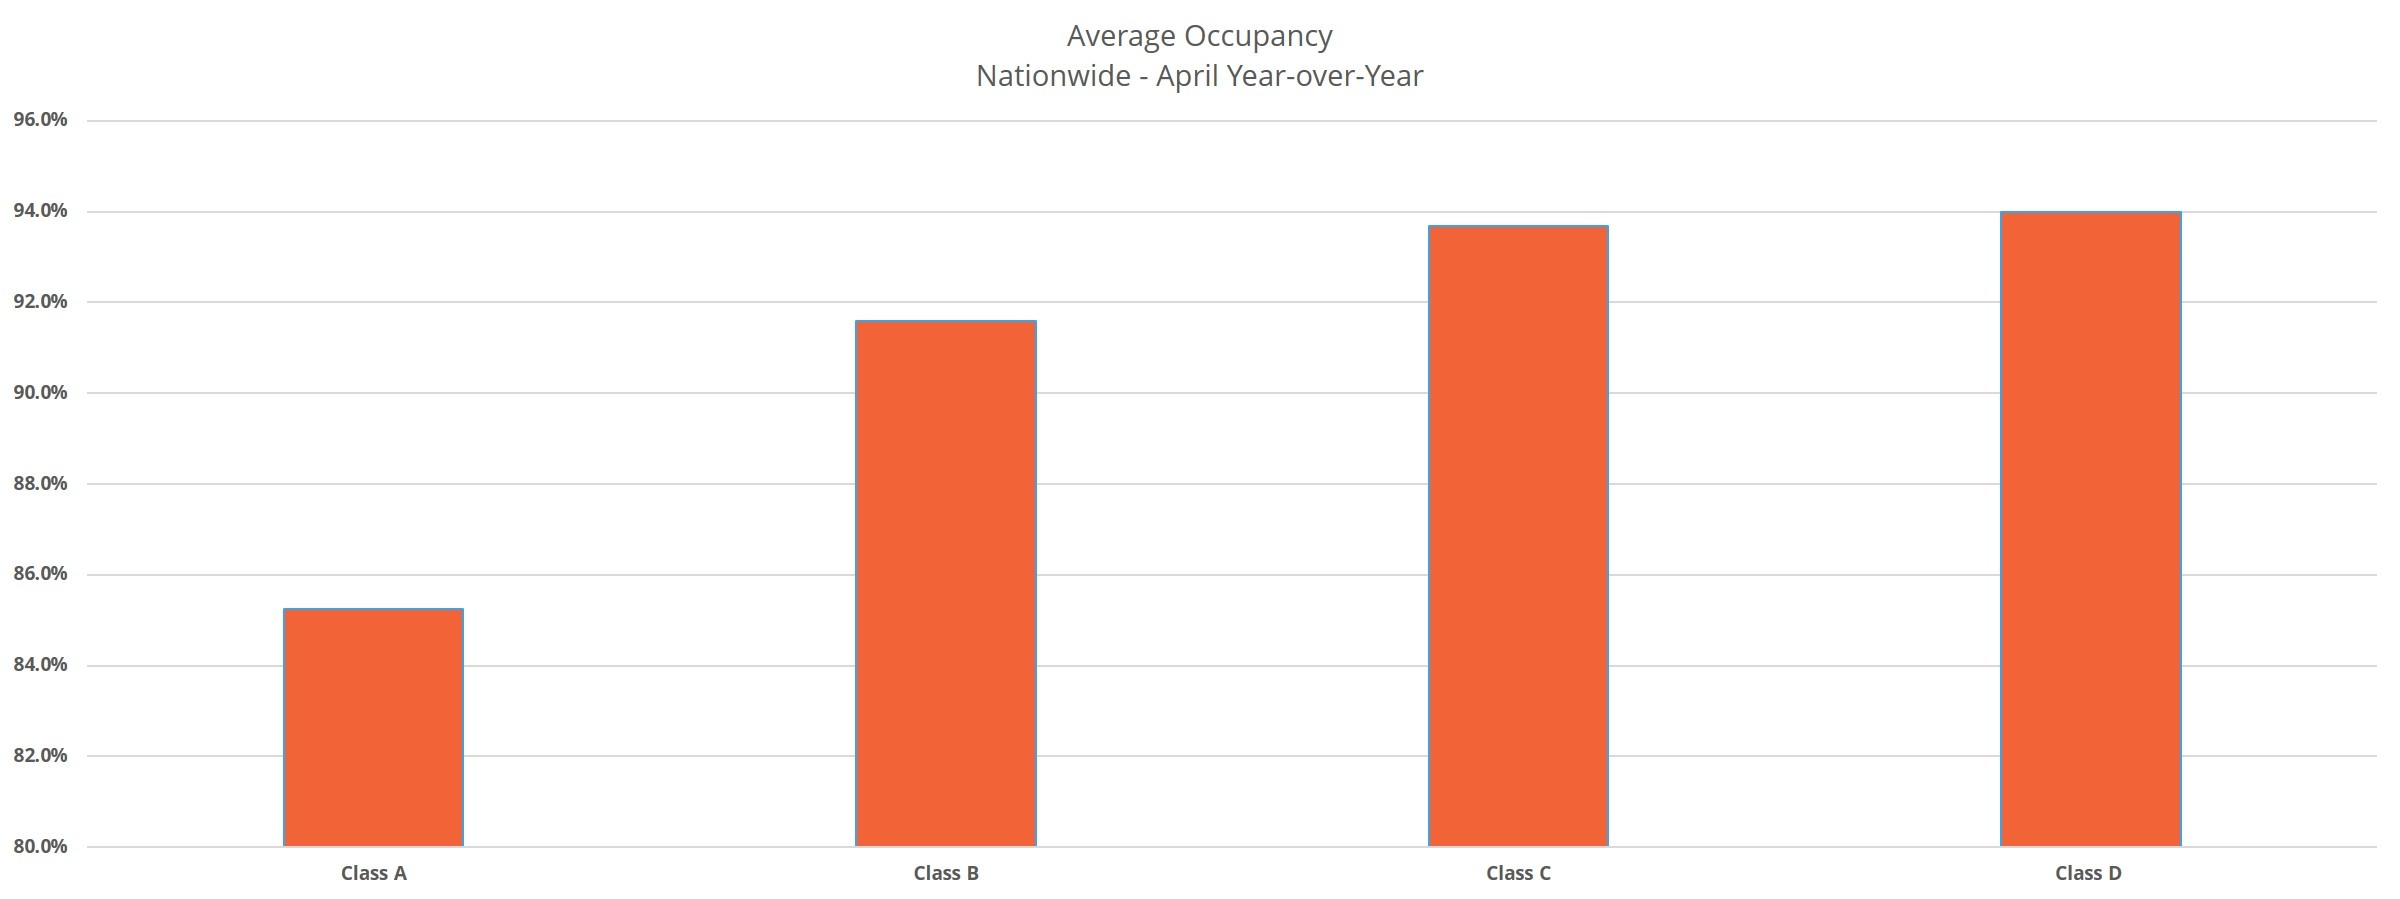 Average Occupancy Nationwide - April Year-over-Year